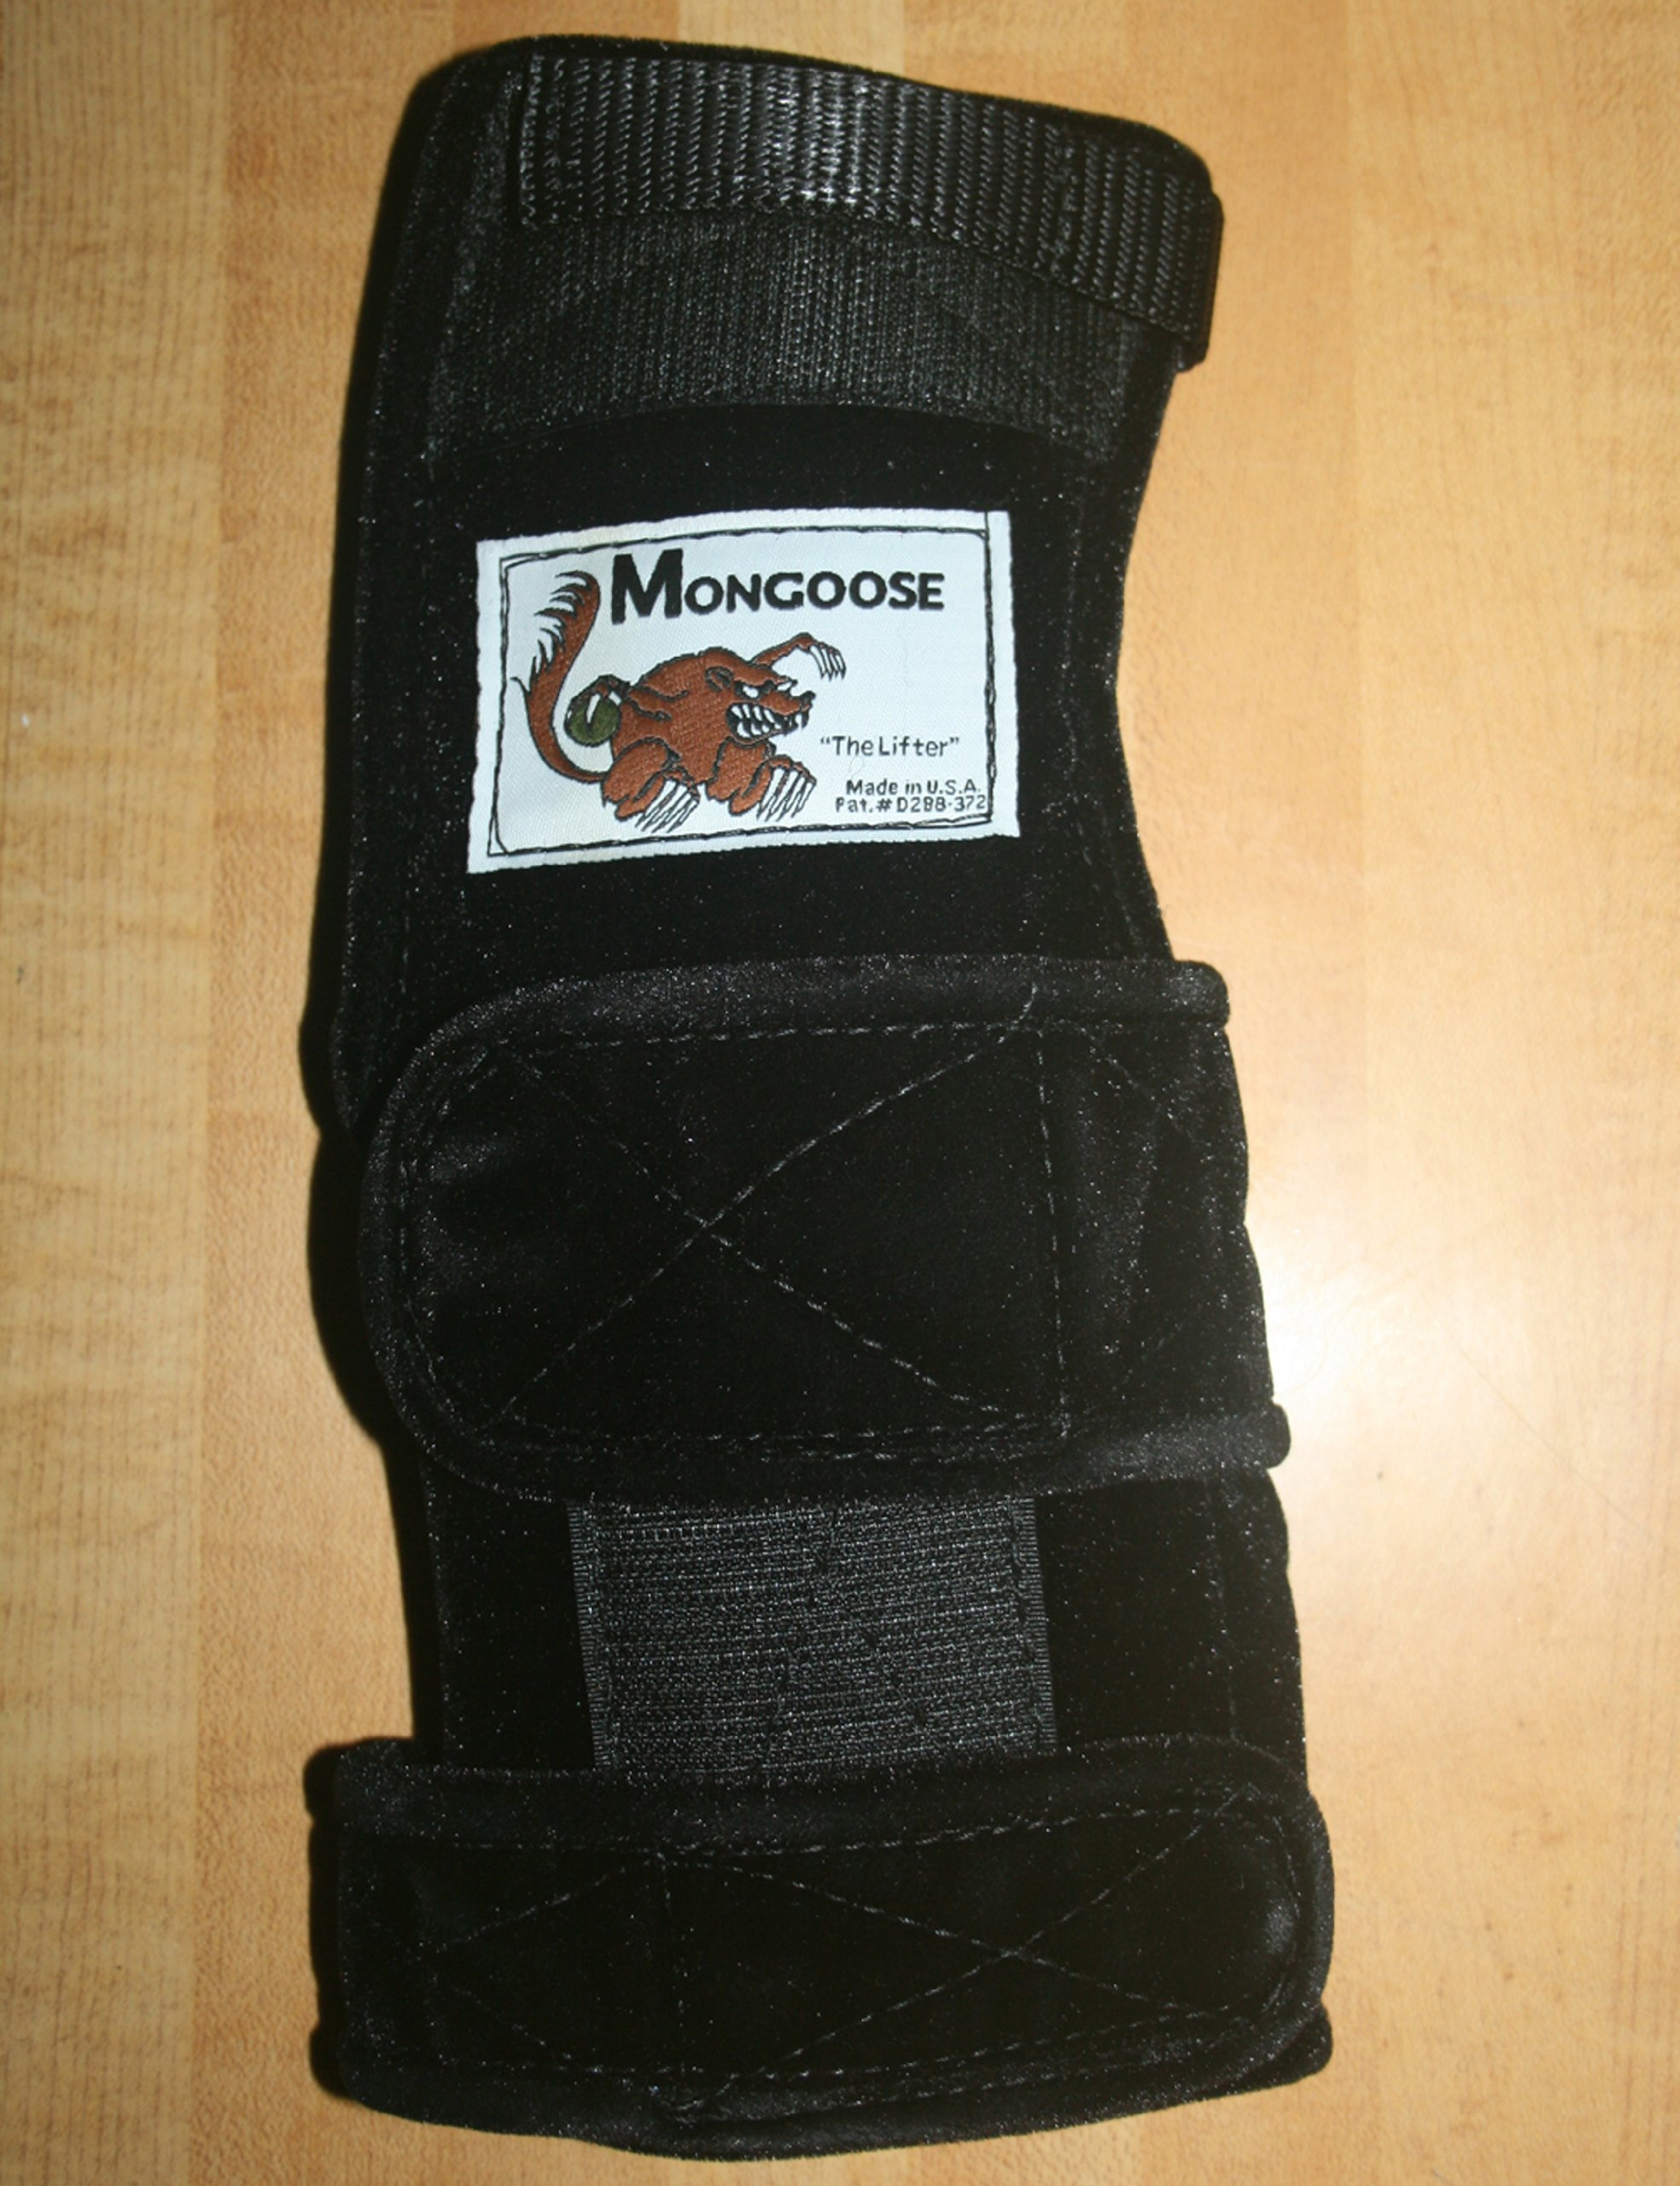 Mongoose ''Lifter Bowling Wrist Support Left Hand, Large, Black by Mongoose